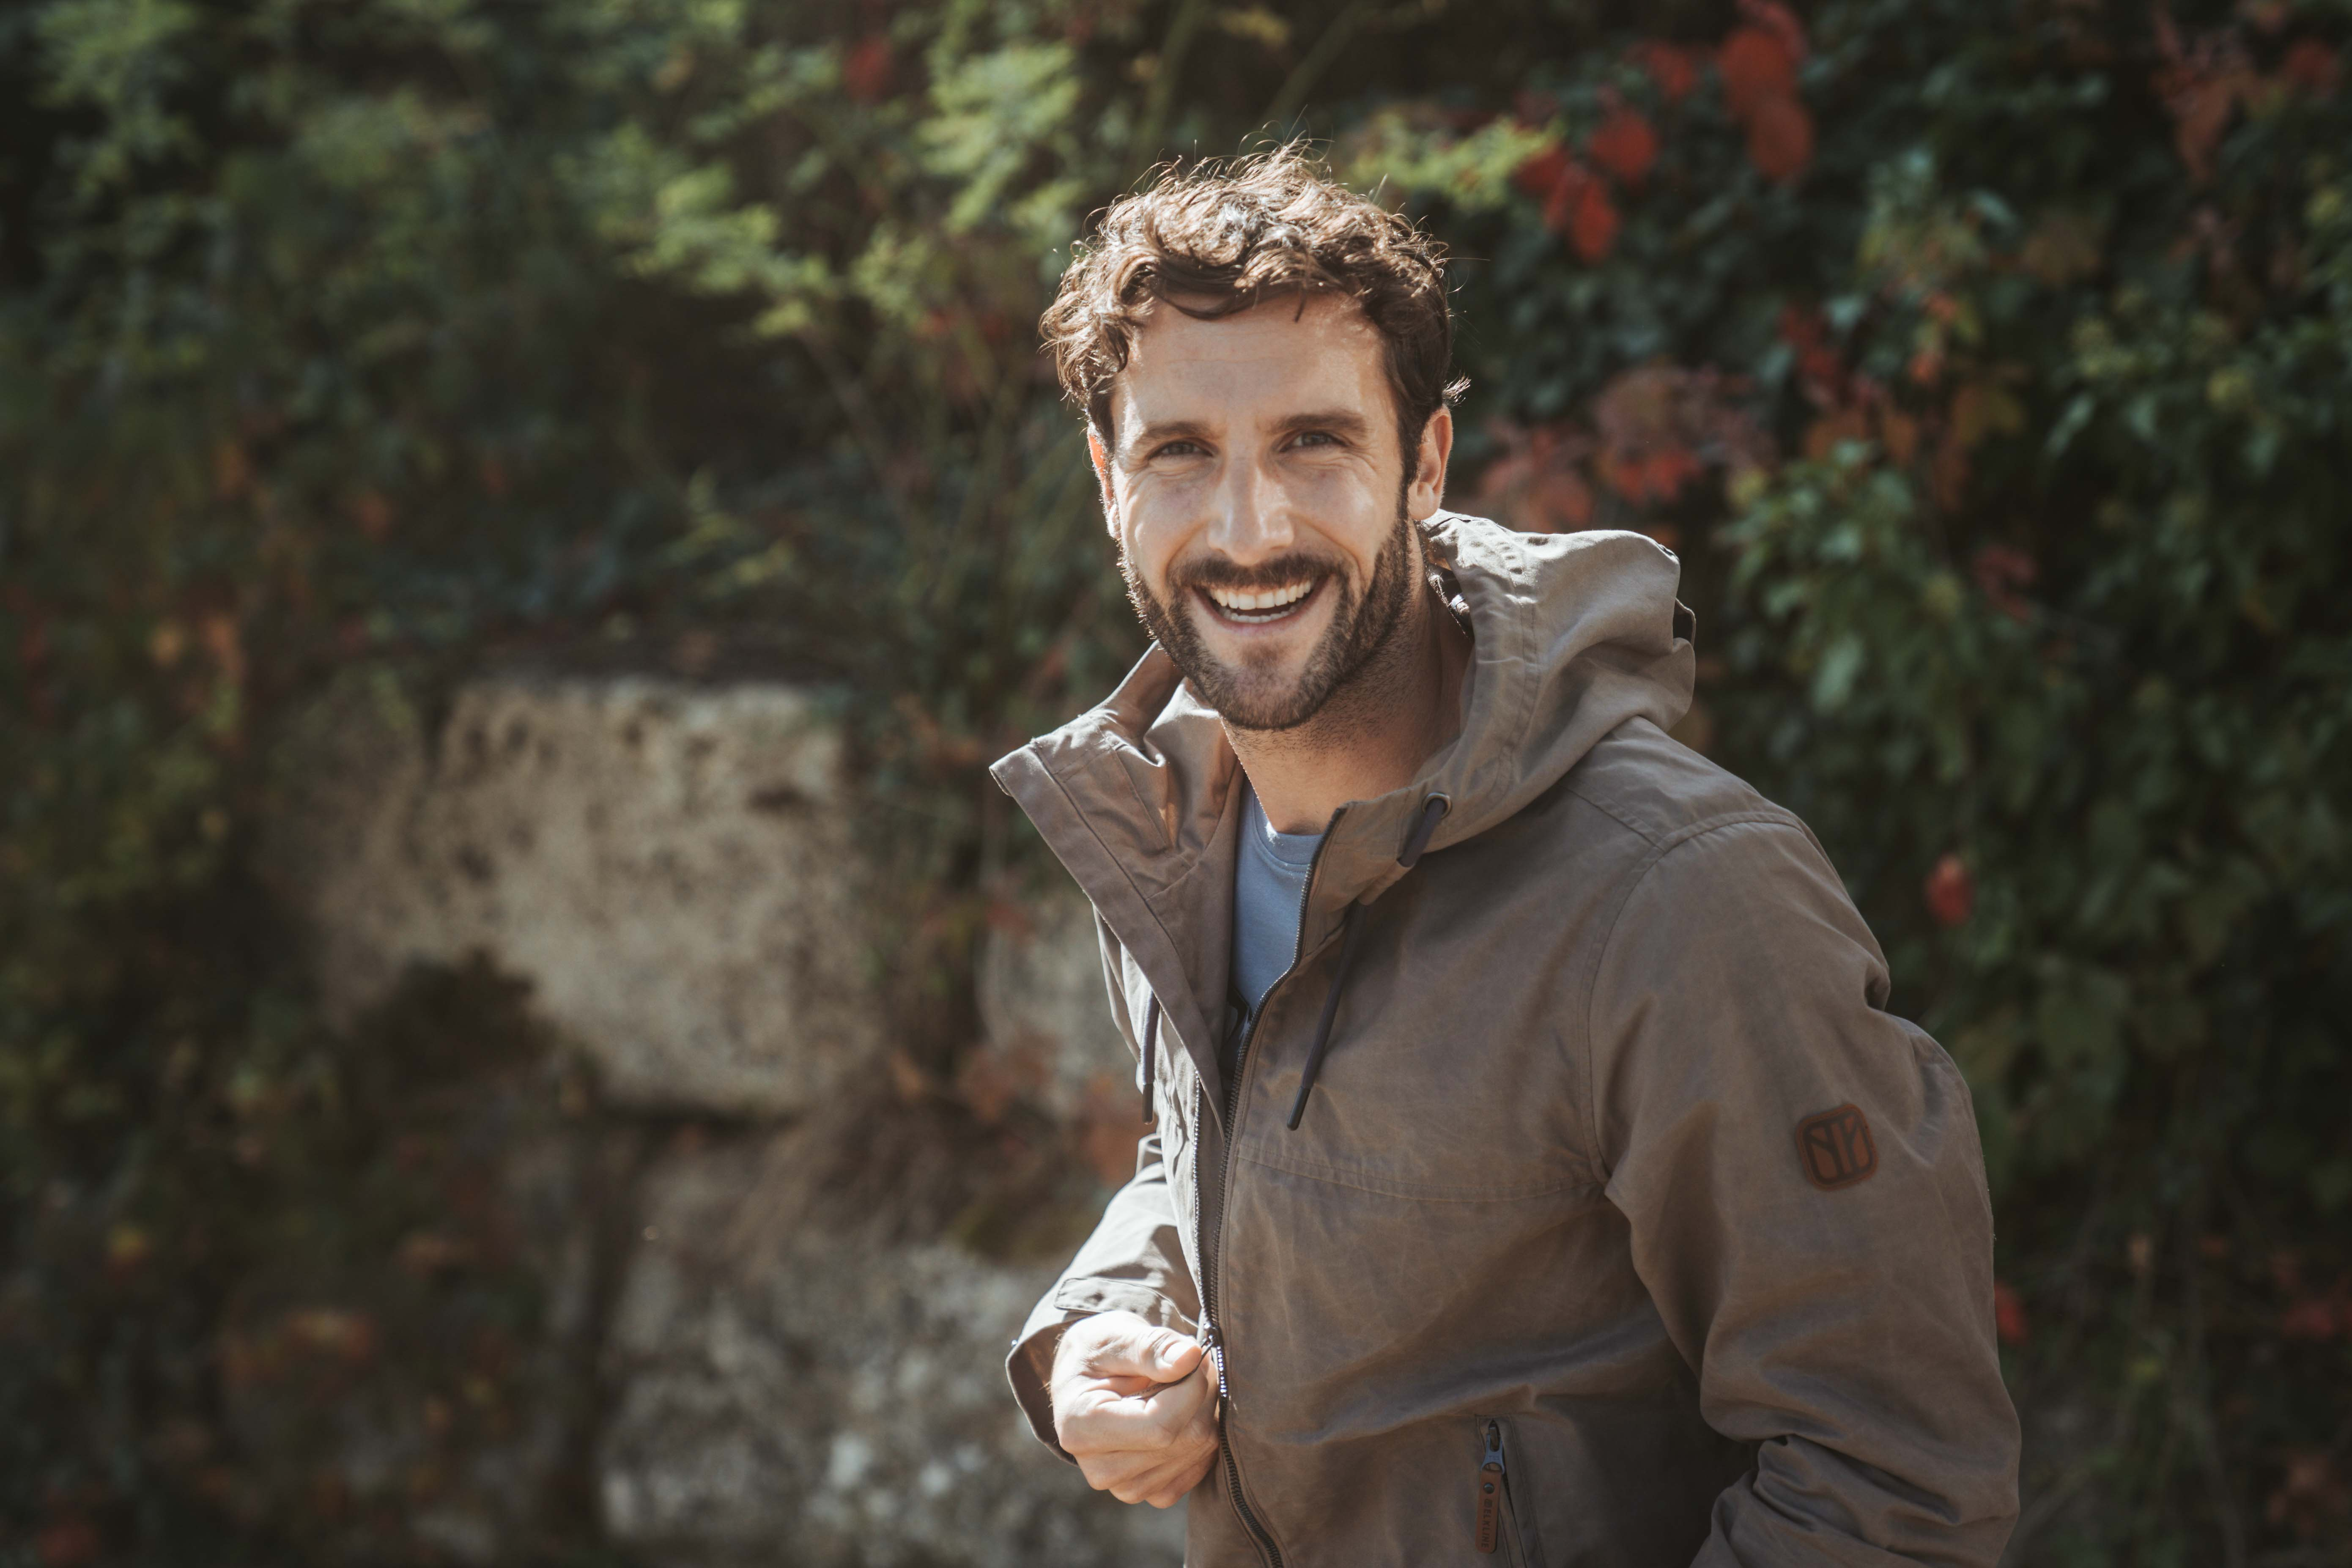 Middle aged man with beard standing in sunlight smiling wearing a brown jacket by Elkline